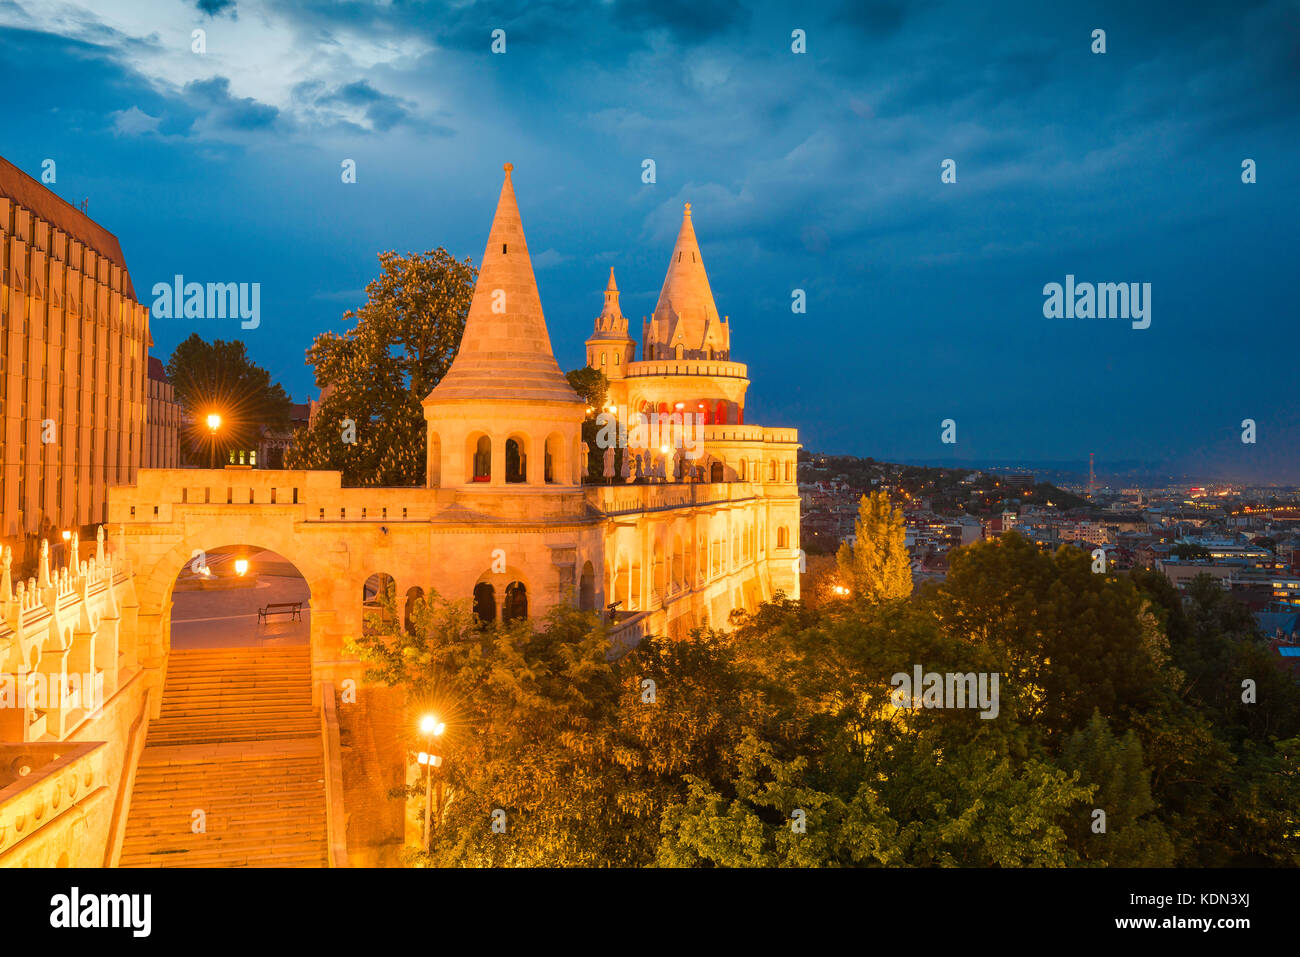 Budapest Fishermans Bastion,view of a turreted section of the Fishermans Bastion at night illuminated by floodlights, - Stock Image